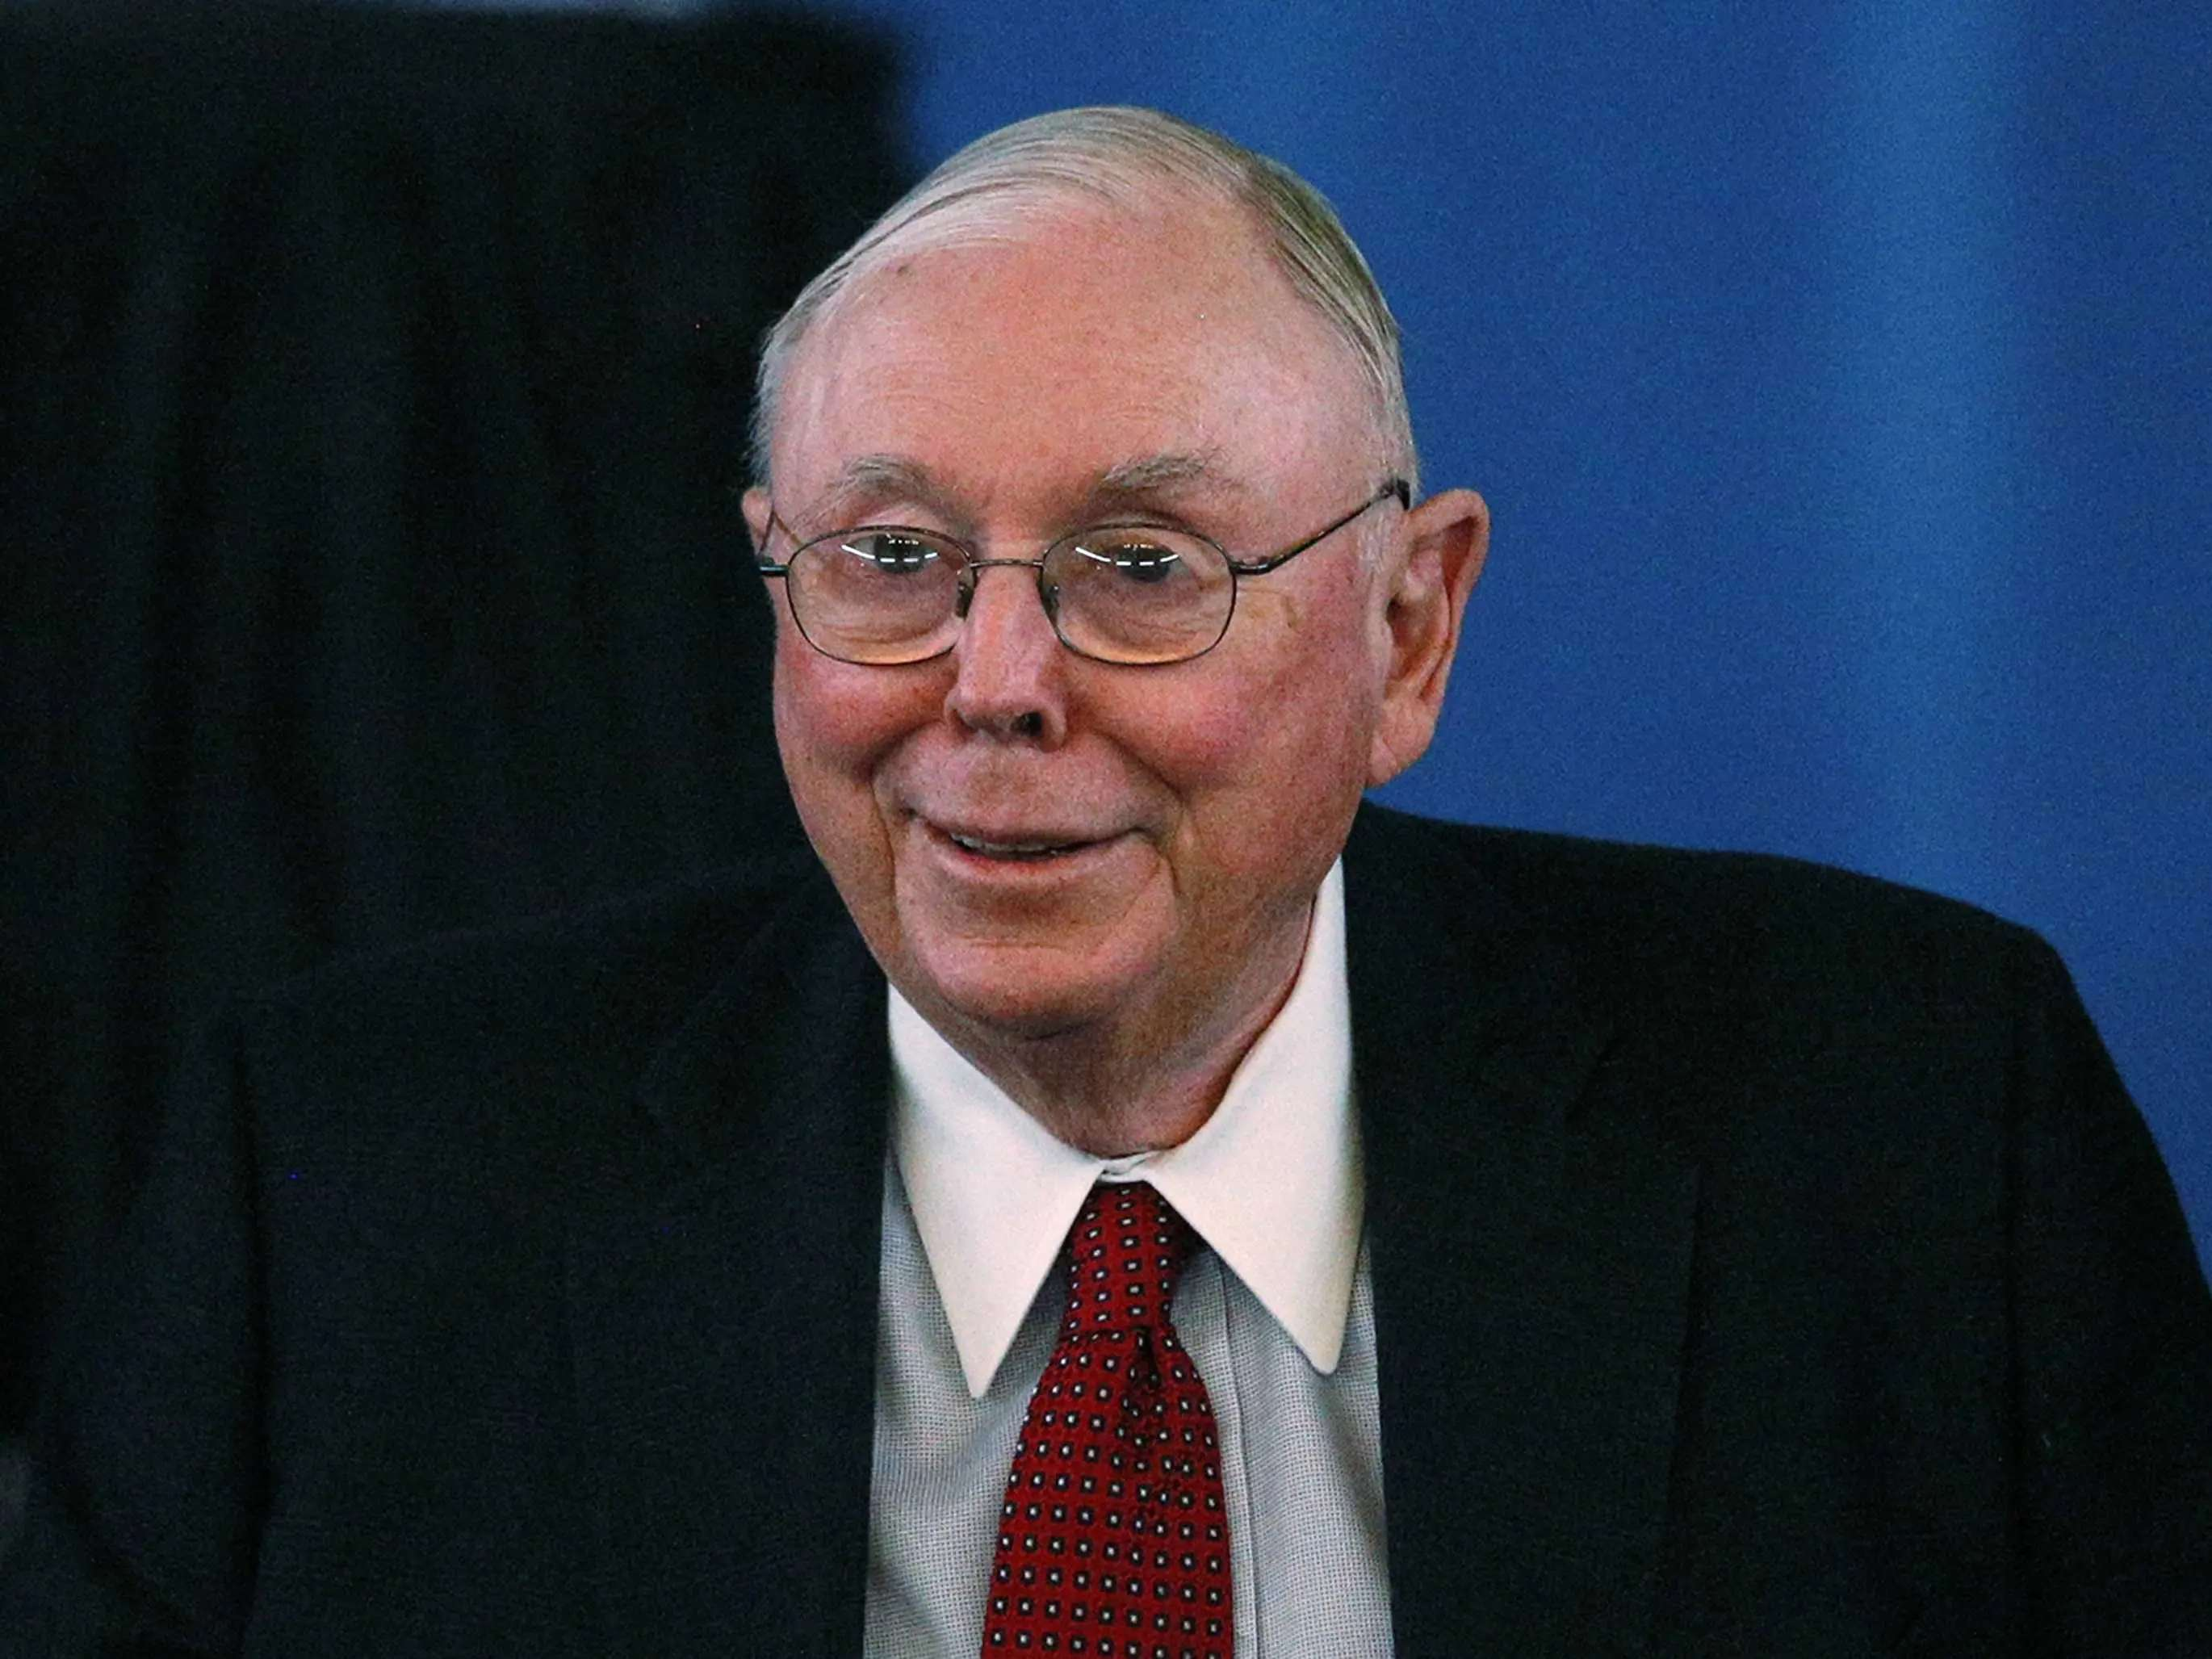 Charlie Munger is devoted to the Economist.